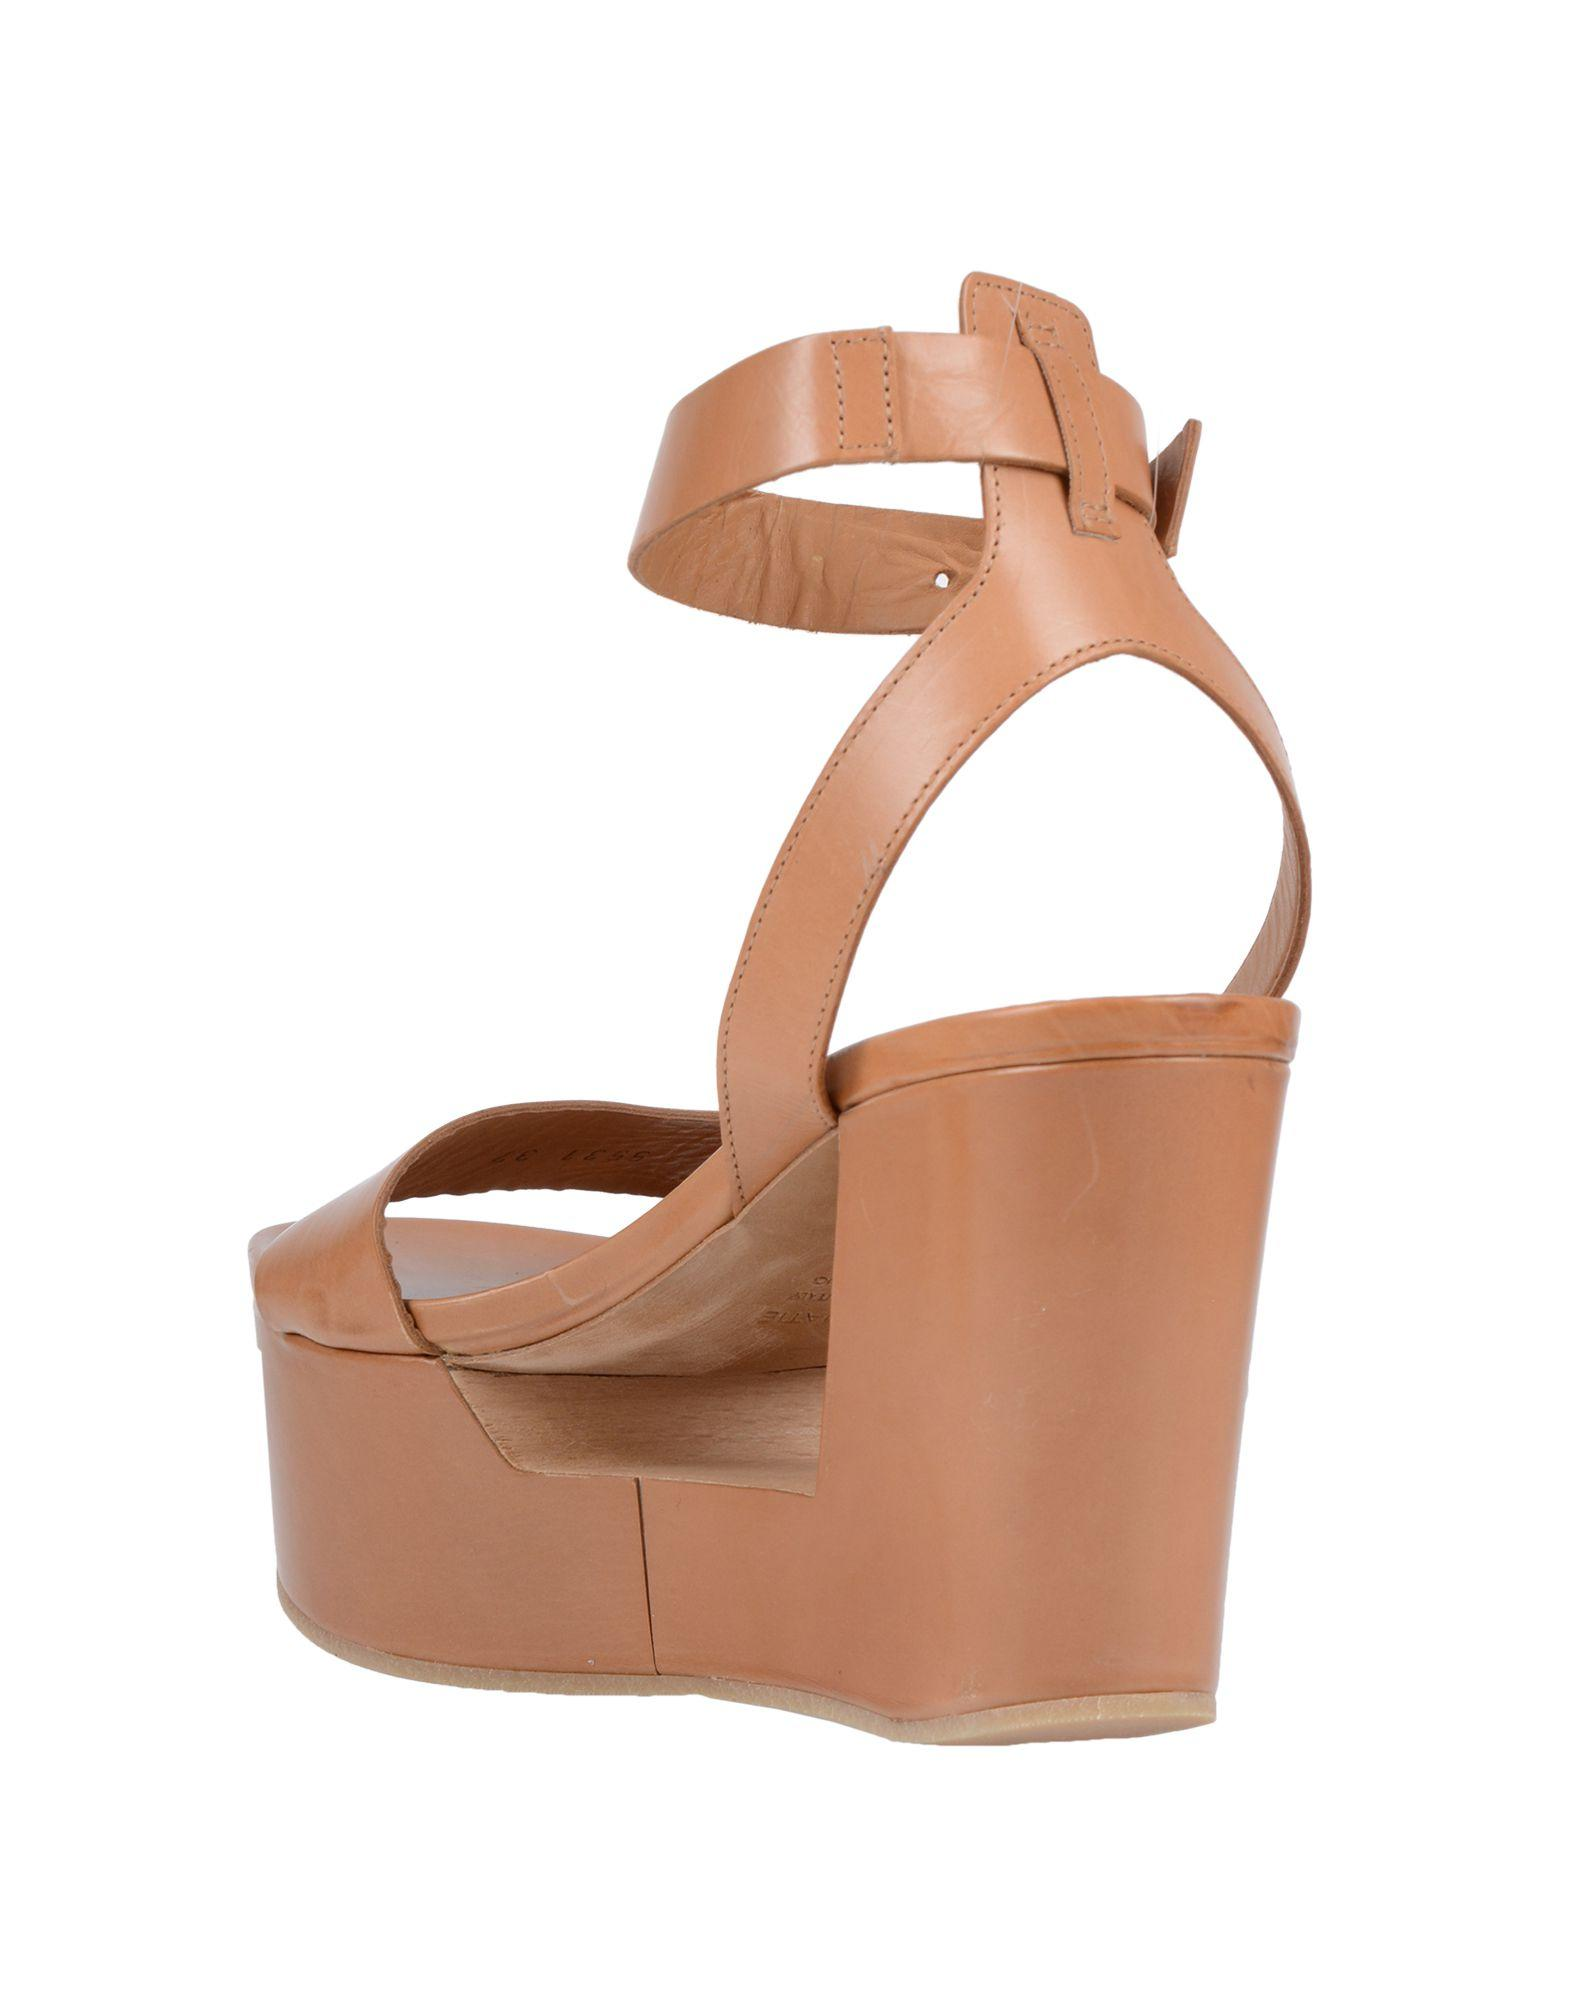 a03487e7e2d Lyst - Vic Matié Sandals in Brown